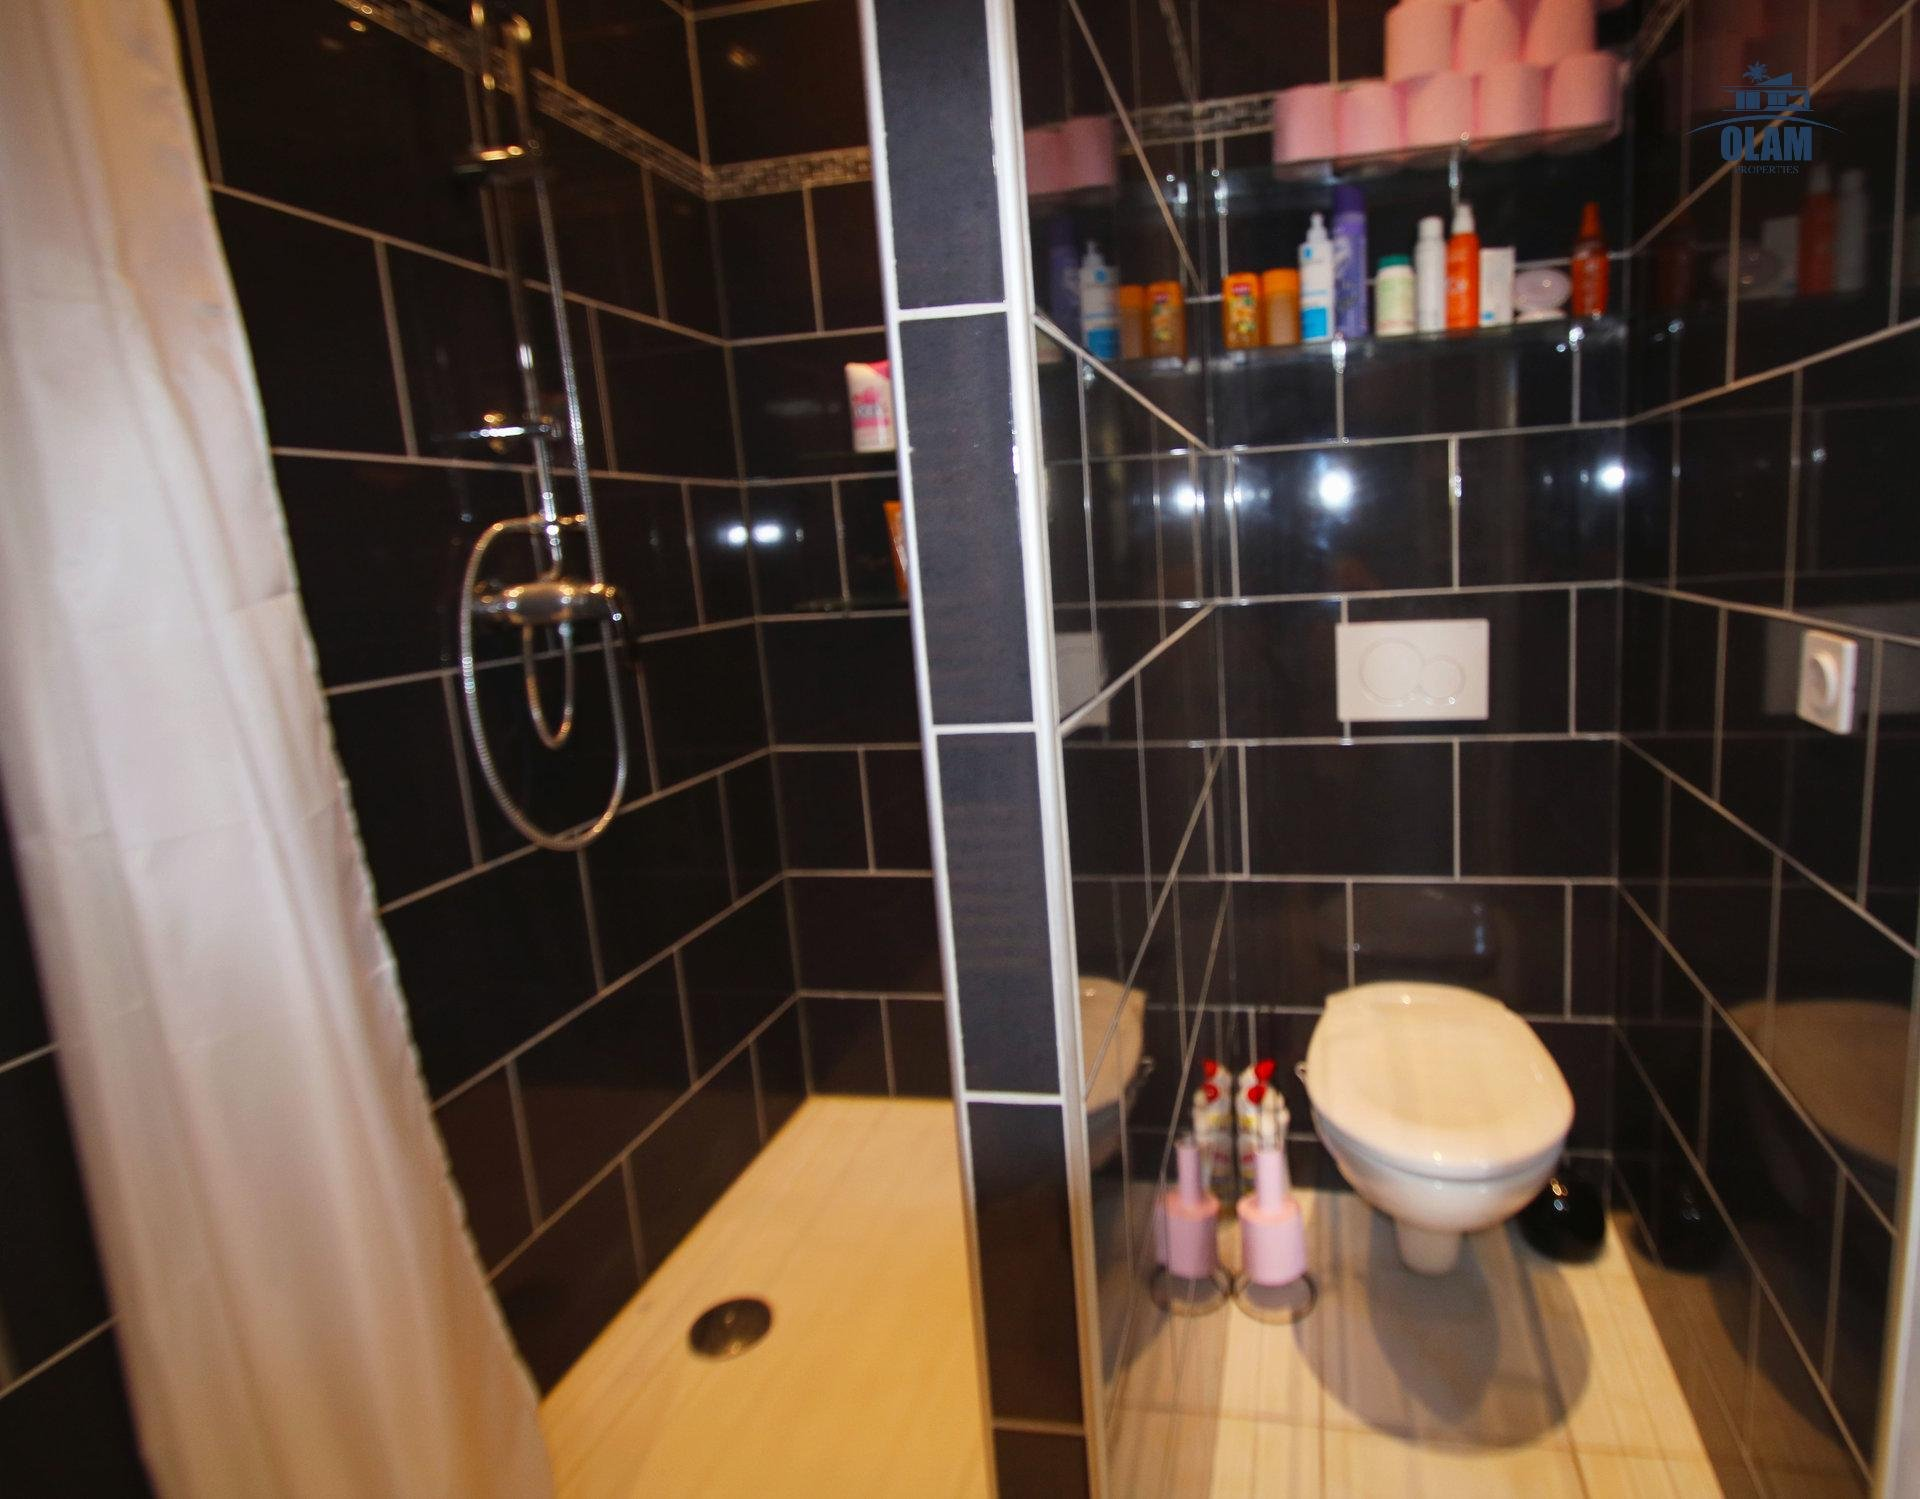 Shower room, toilet, studio, Cannes, Croisette, French Riviera